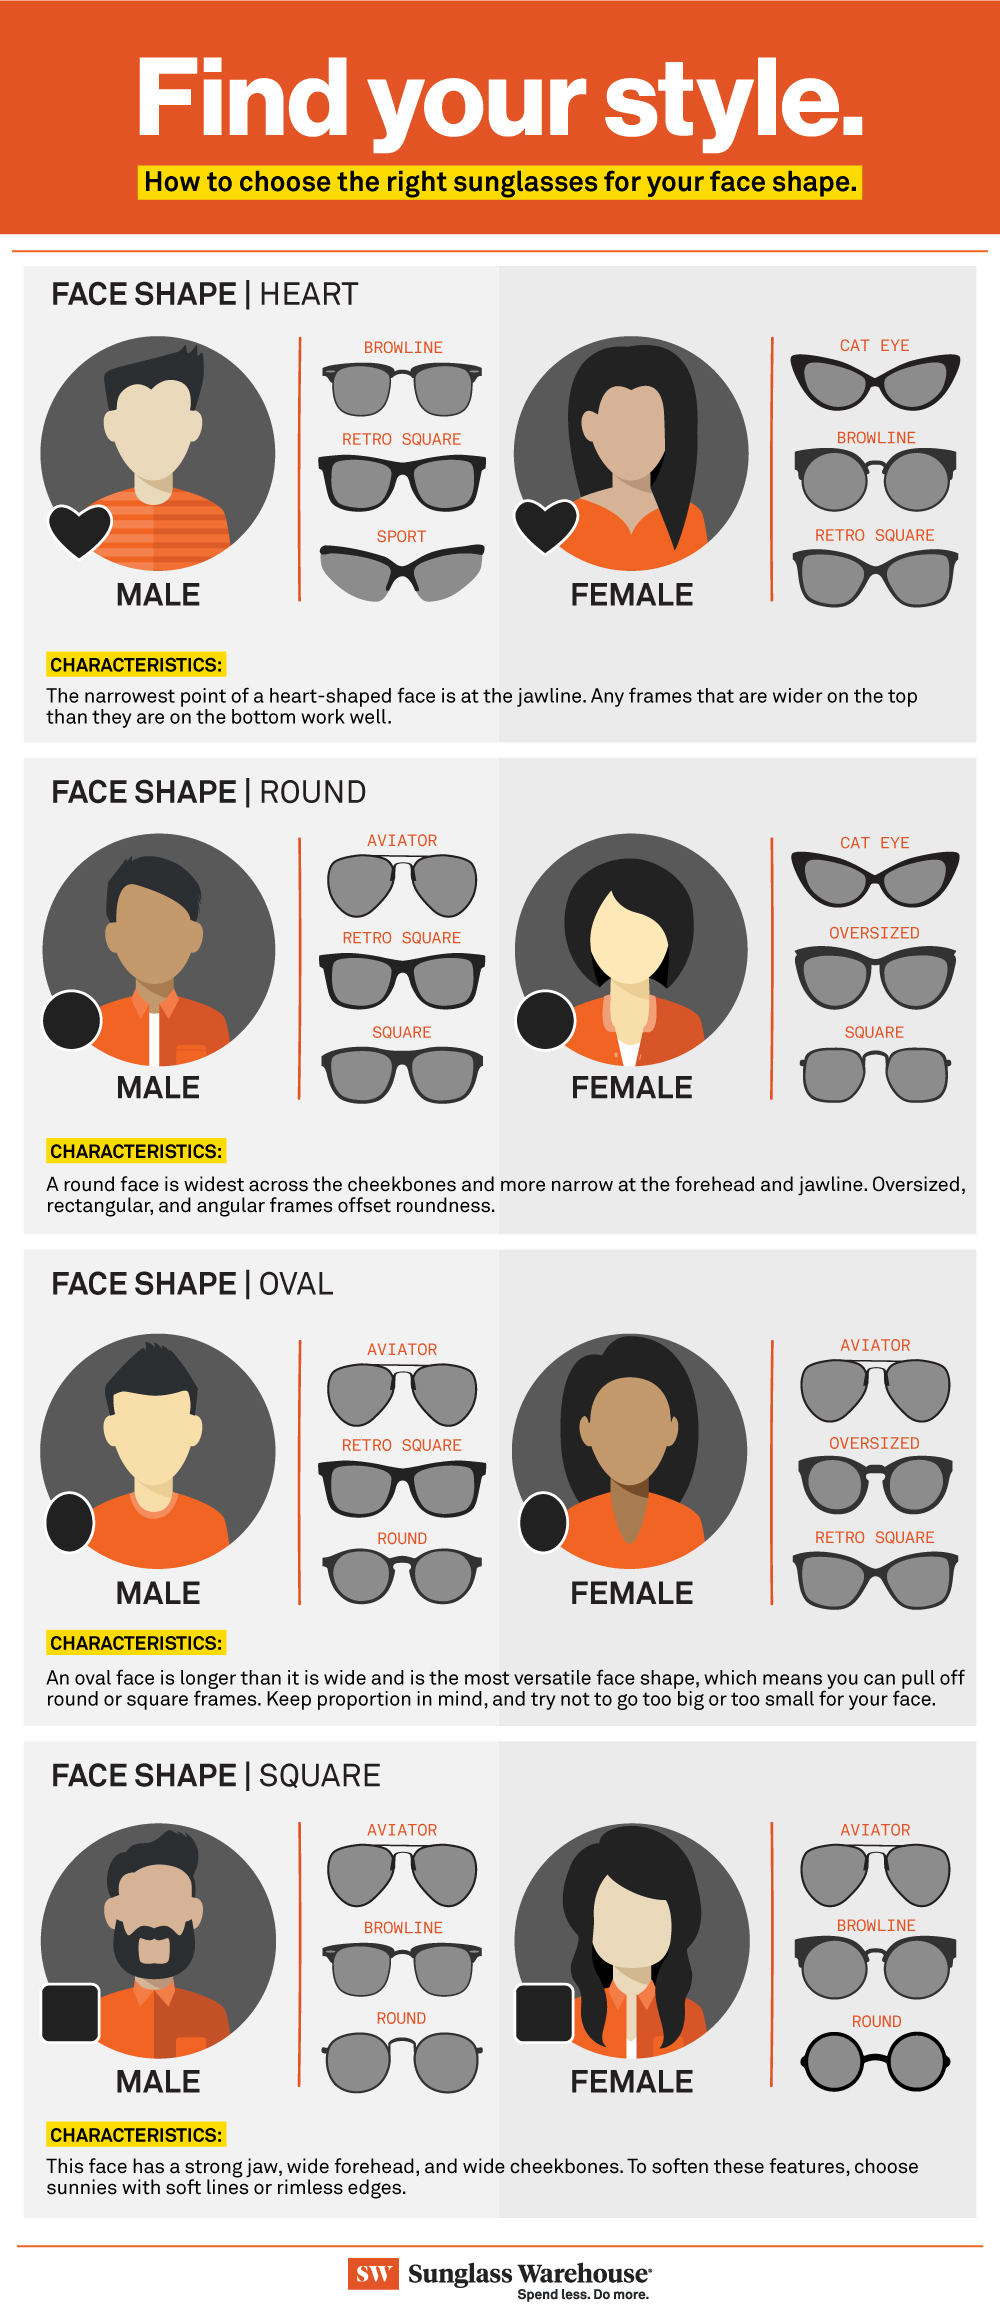 6143bd98923c Now that you know your face shape and the best sunglasses shapes to shop